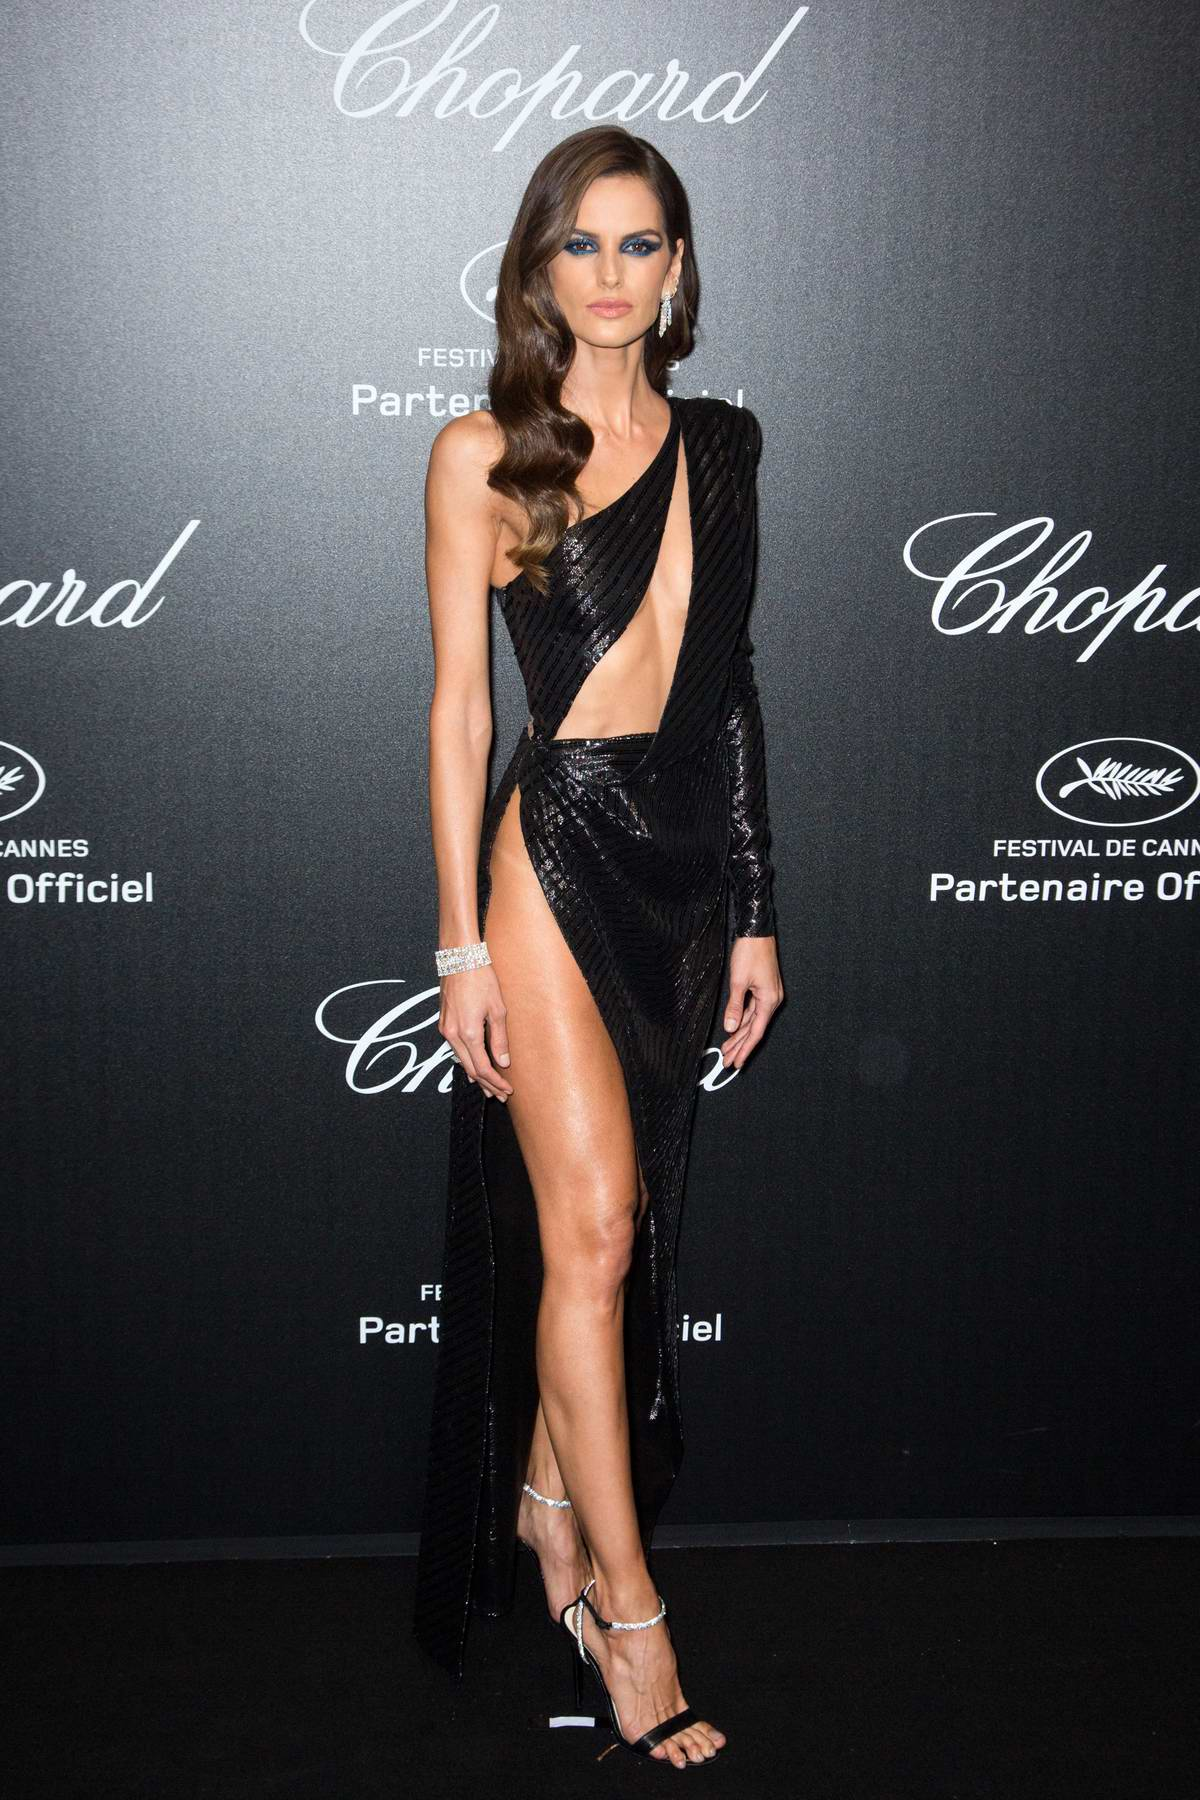 Izabel Goulart attends the Chopard Love Night Party during the 72nd annual Cannes Film Festival in Cannes, France